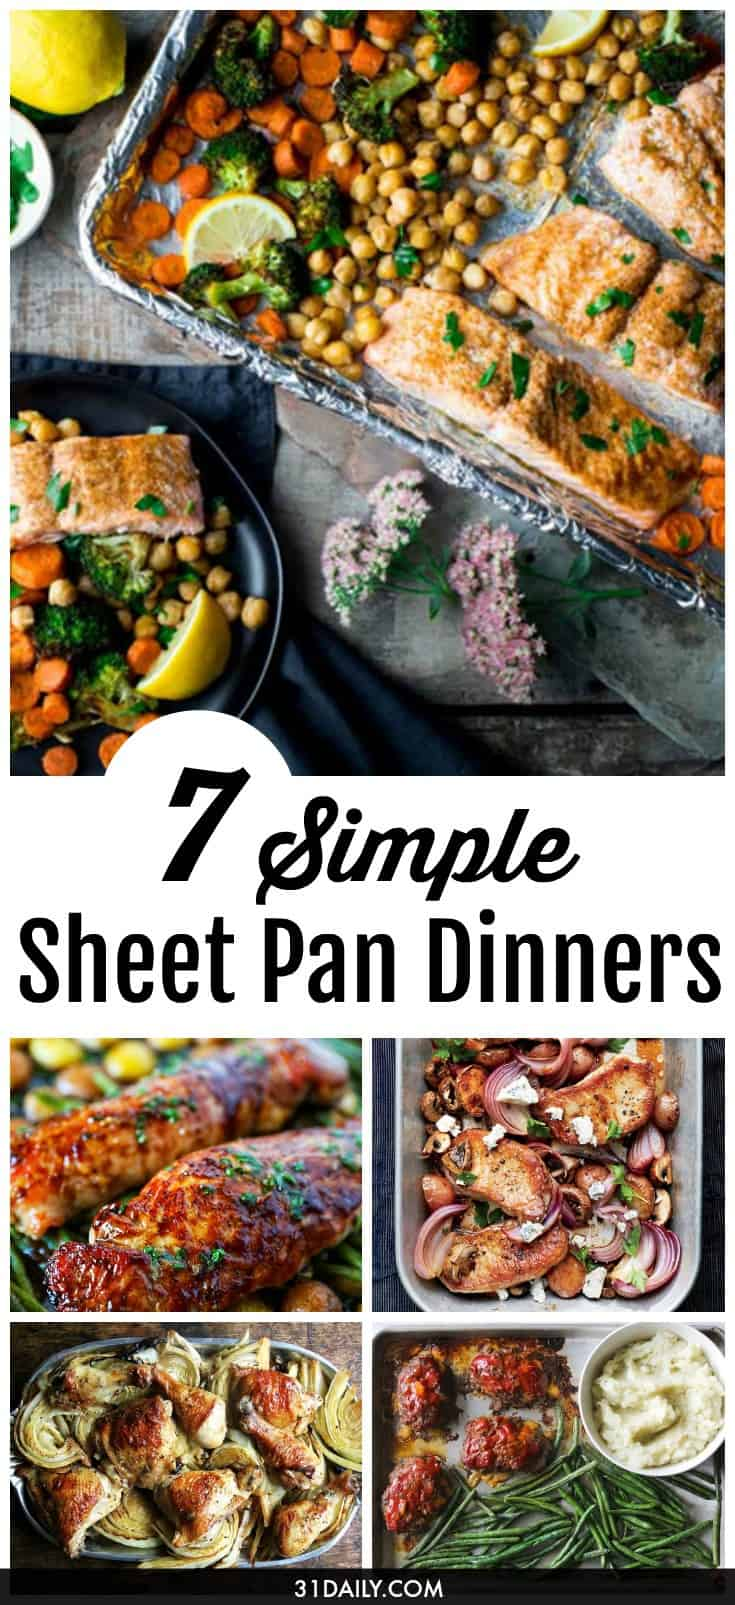 7 Simple Sheet Pan Dinners that Make Busy Weeknights Easy | 31Daily.com